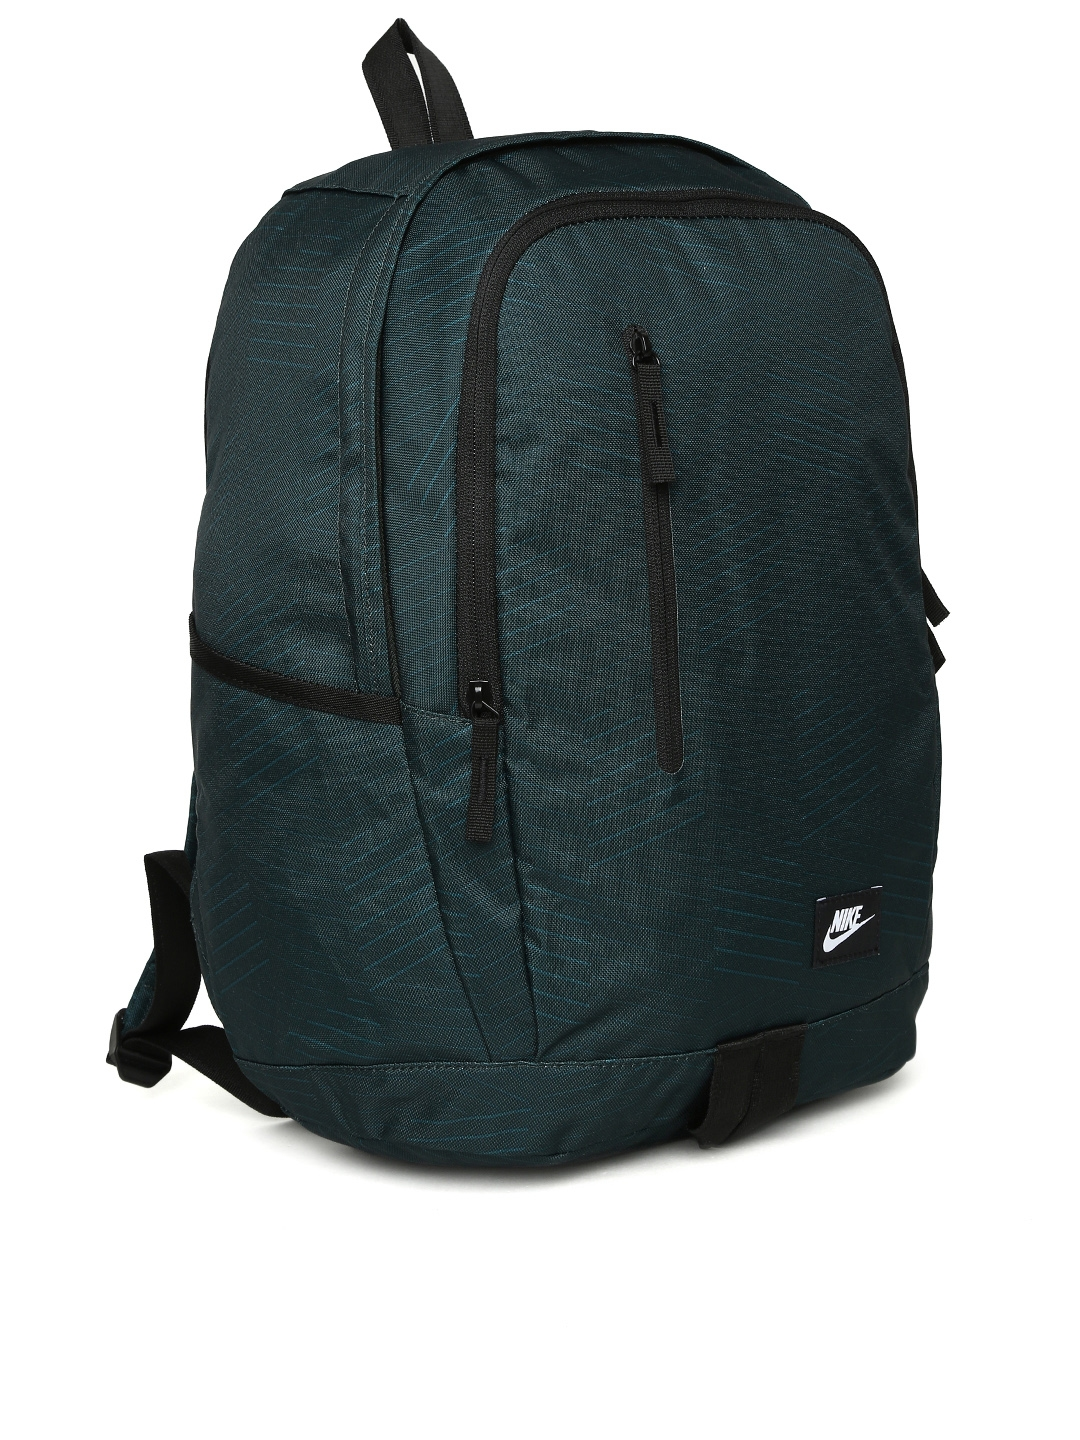 Buy Nike Unisex Fluorescent Green NK ALL ACCESS SOLEDAY Backpack ... 8d670d054160b